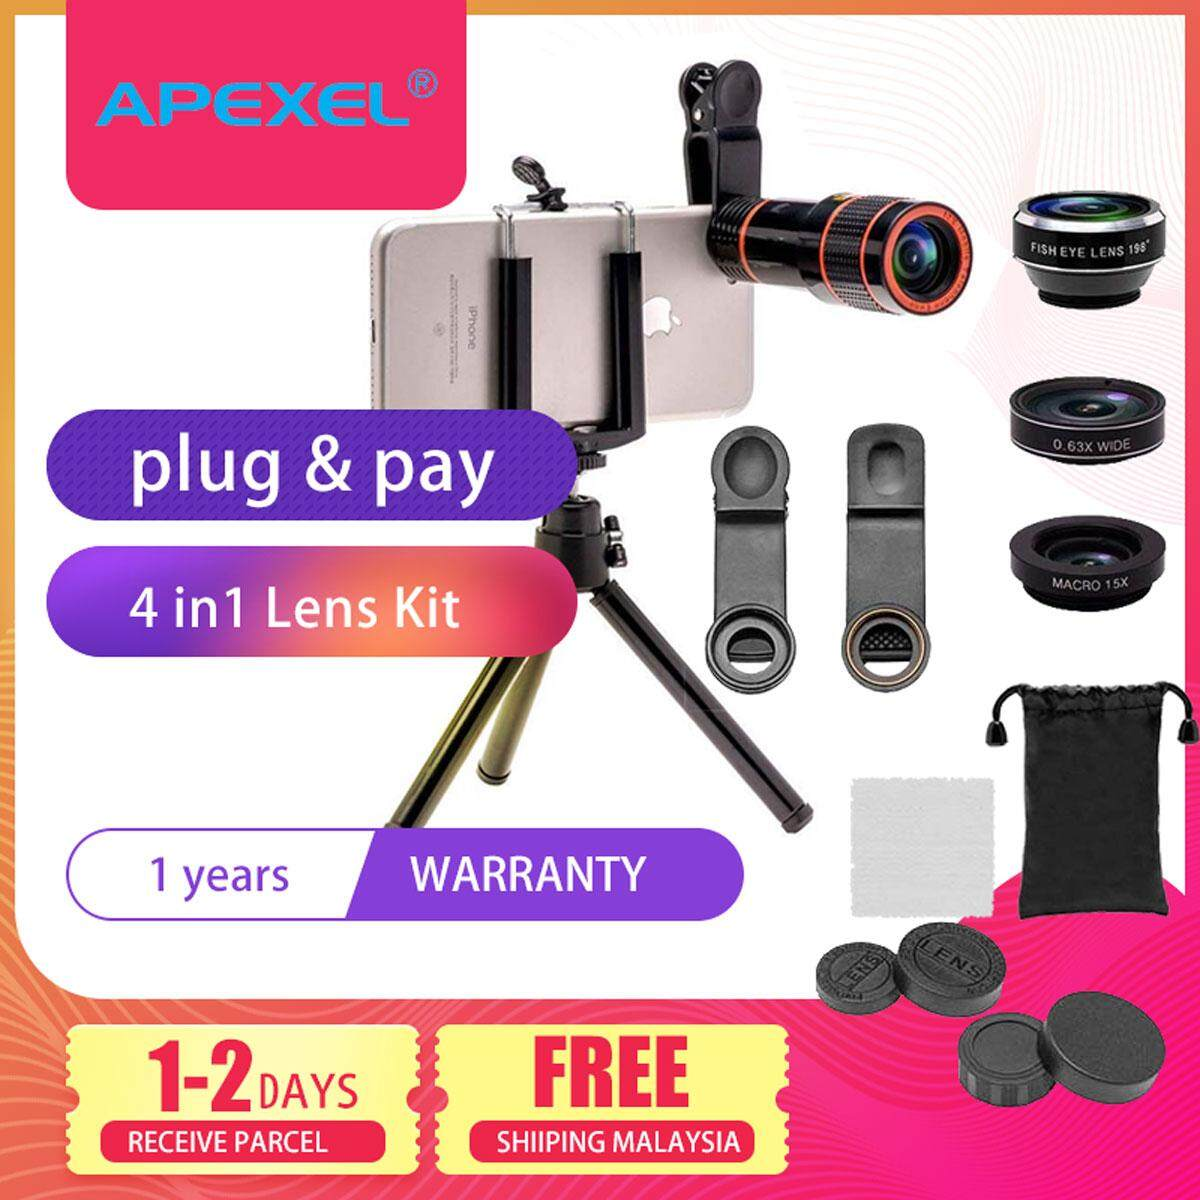 Apexel 4in1 Camera Lens Kit (telescope, fisheye,Wide Angle,Macro, Mini Tripod & Phone Holder) for mobile phone apple iphone samsung vivo oppo huawei xiaomi travel portable(APL-HS12XDG3ZJ)